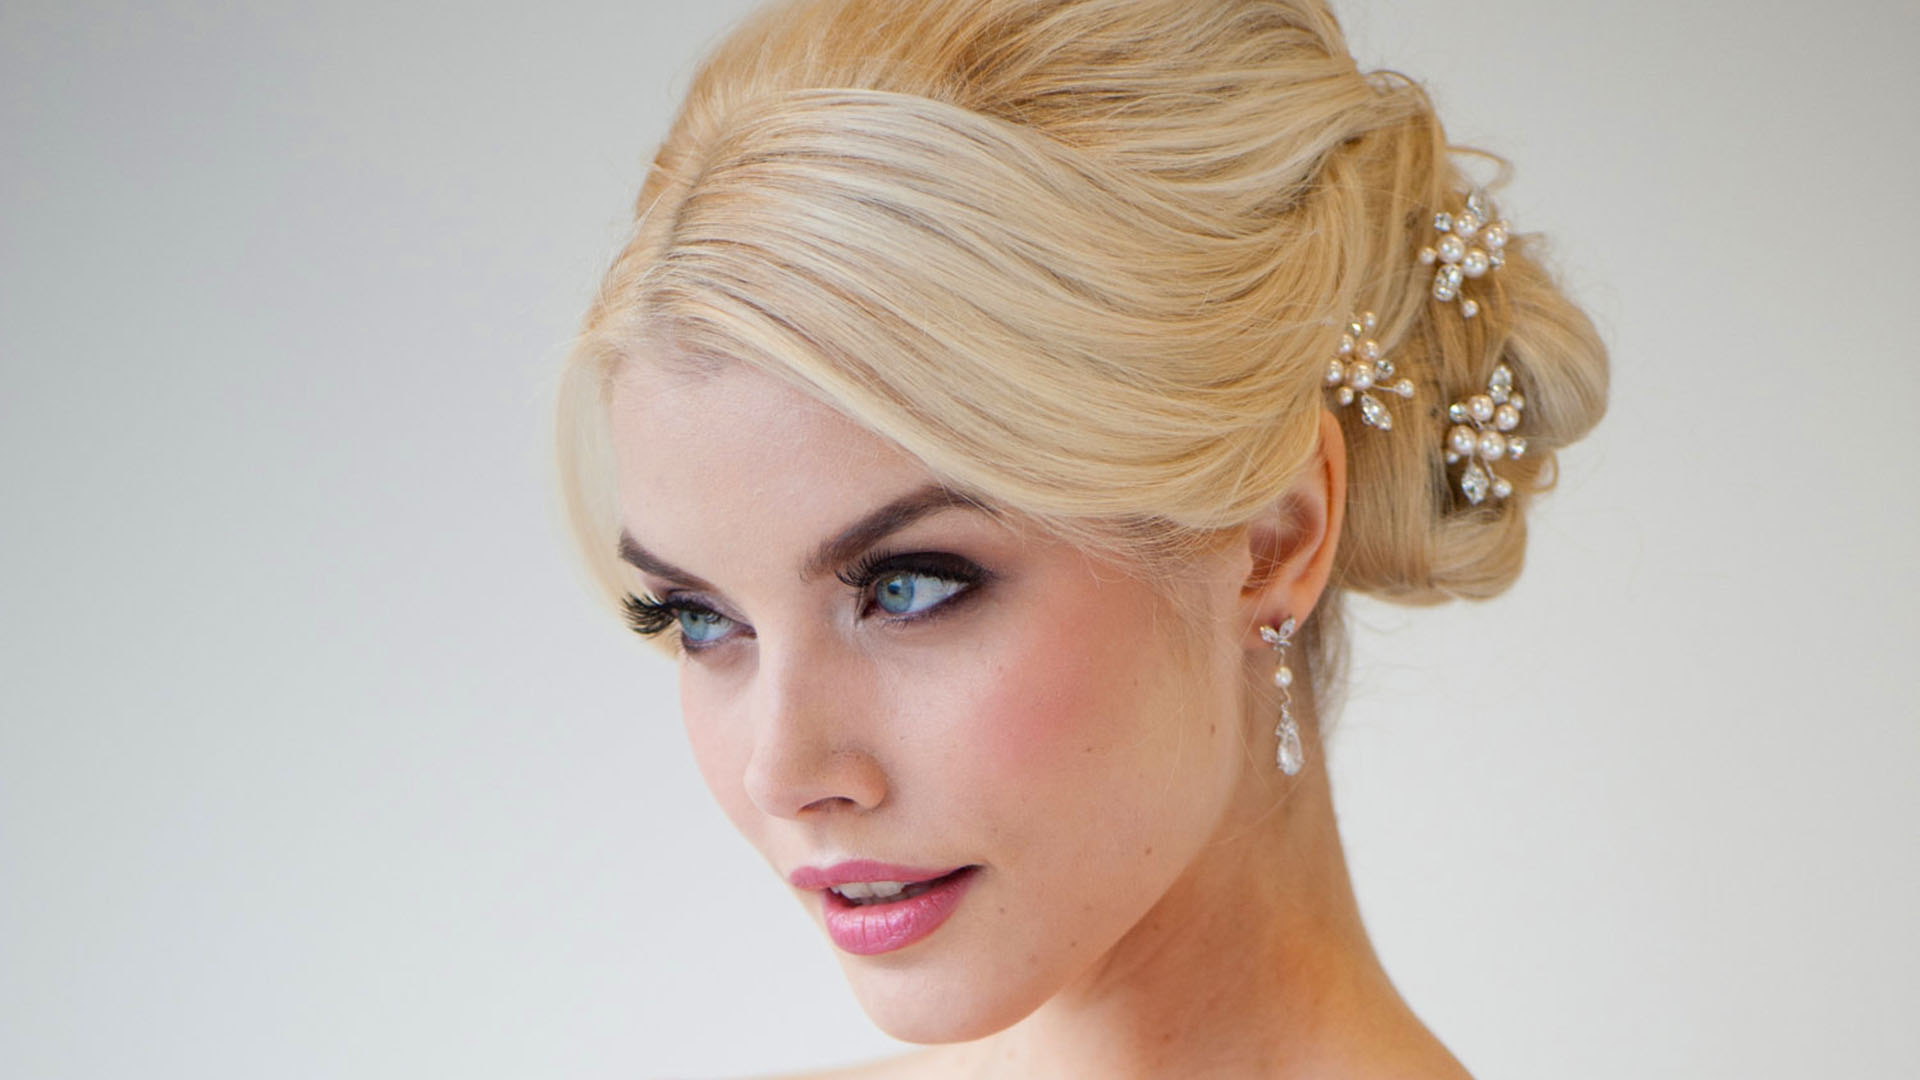 weekly wedding tip: techniques & tips for stylish wedding day hair